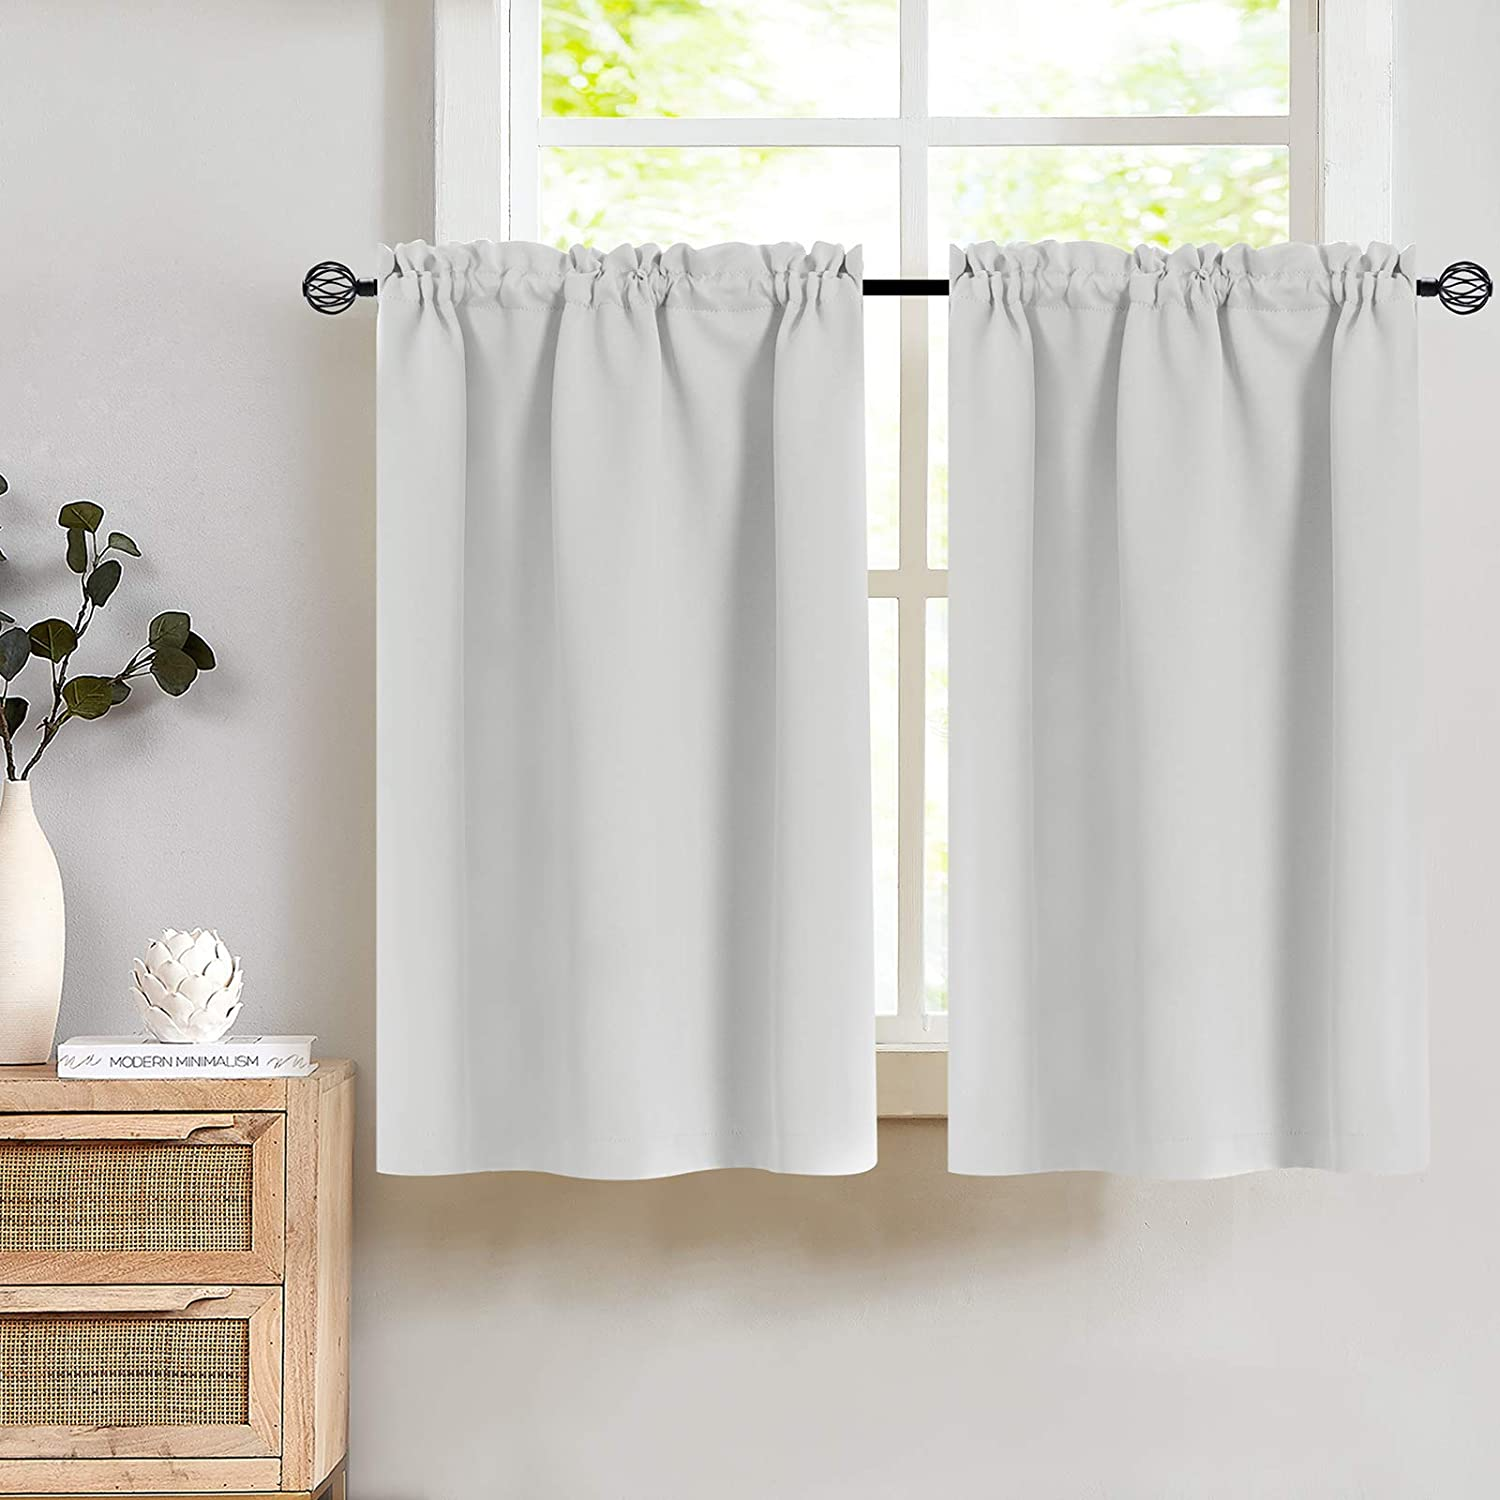 Light Grey Thermal Insulated Tier Curtains Room Darkening- Energy Efficient Kitchen Top Curtain Panels for Short Basement Windows for 2 Panels W34 x L24 Inches Light Grey